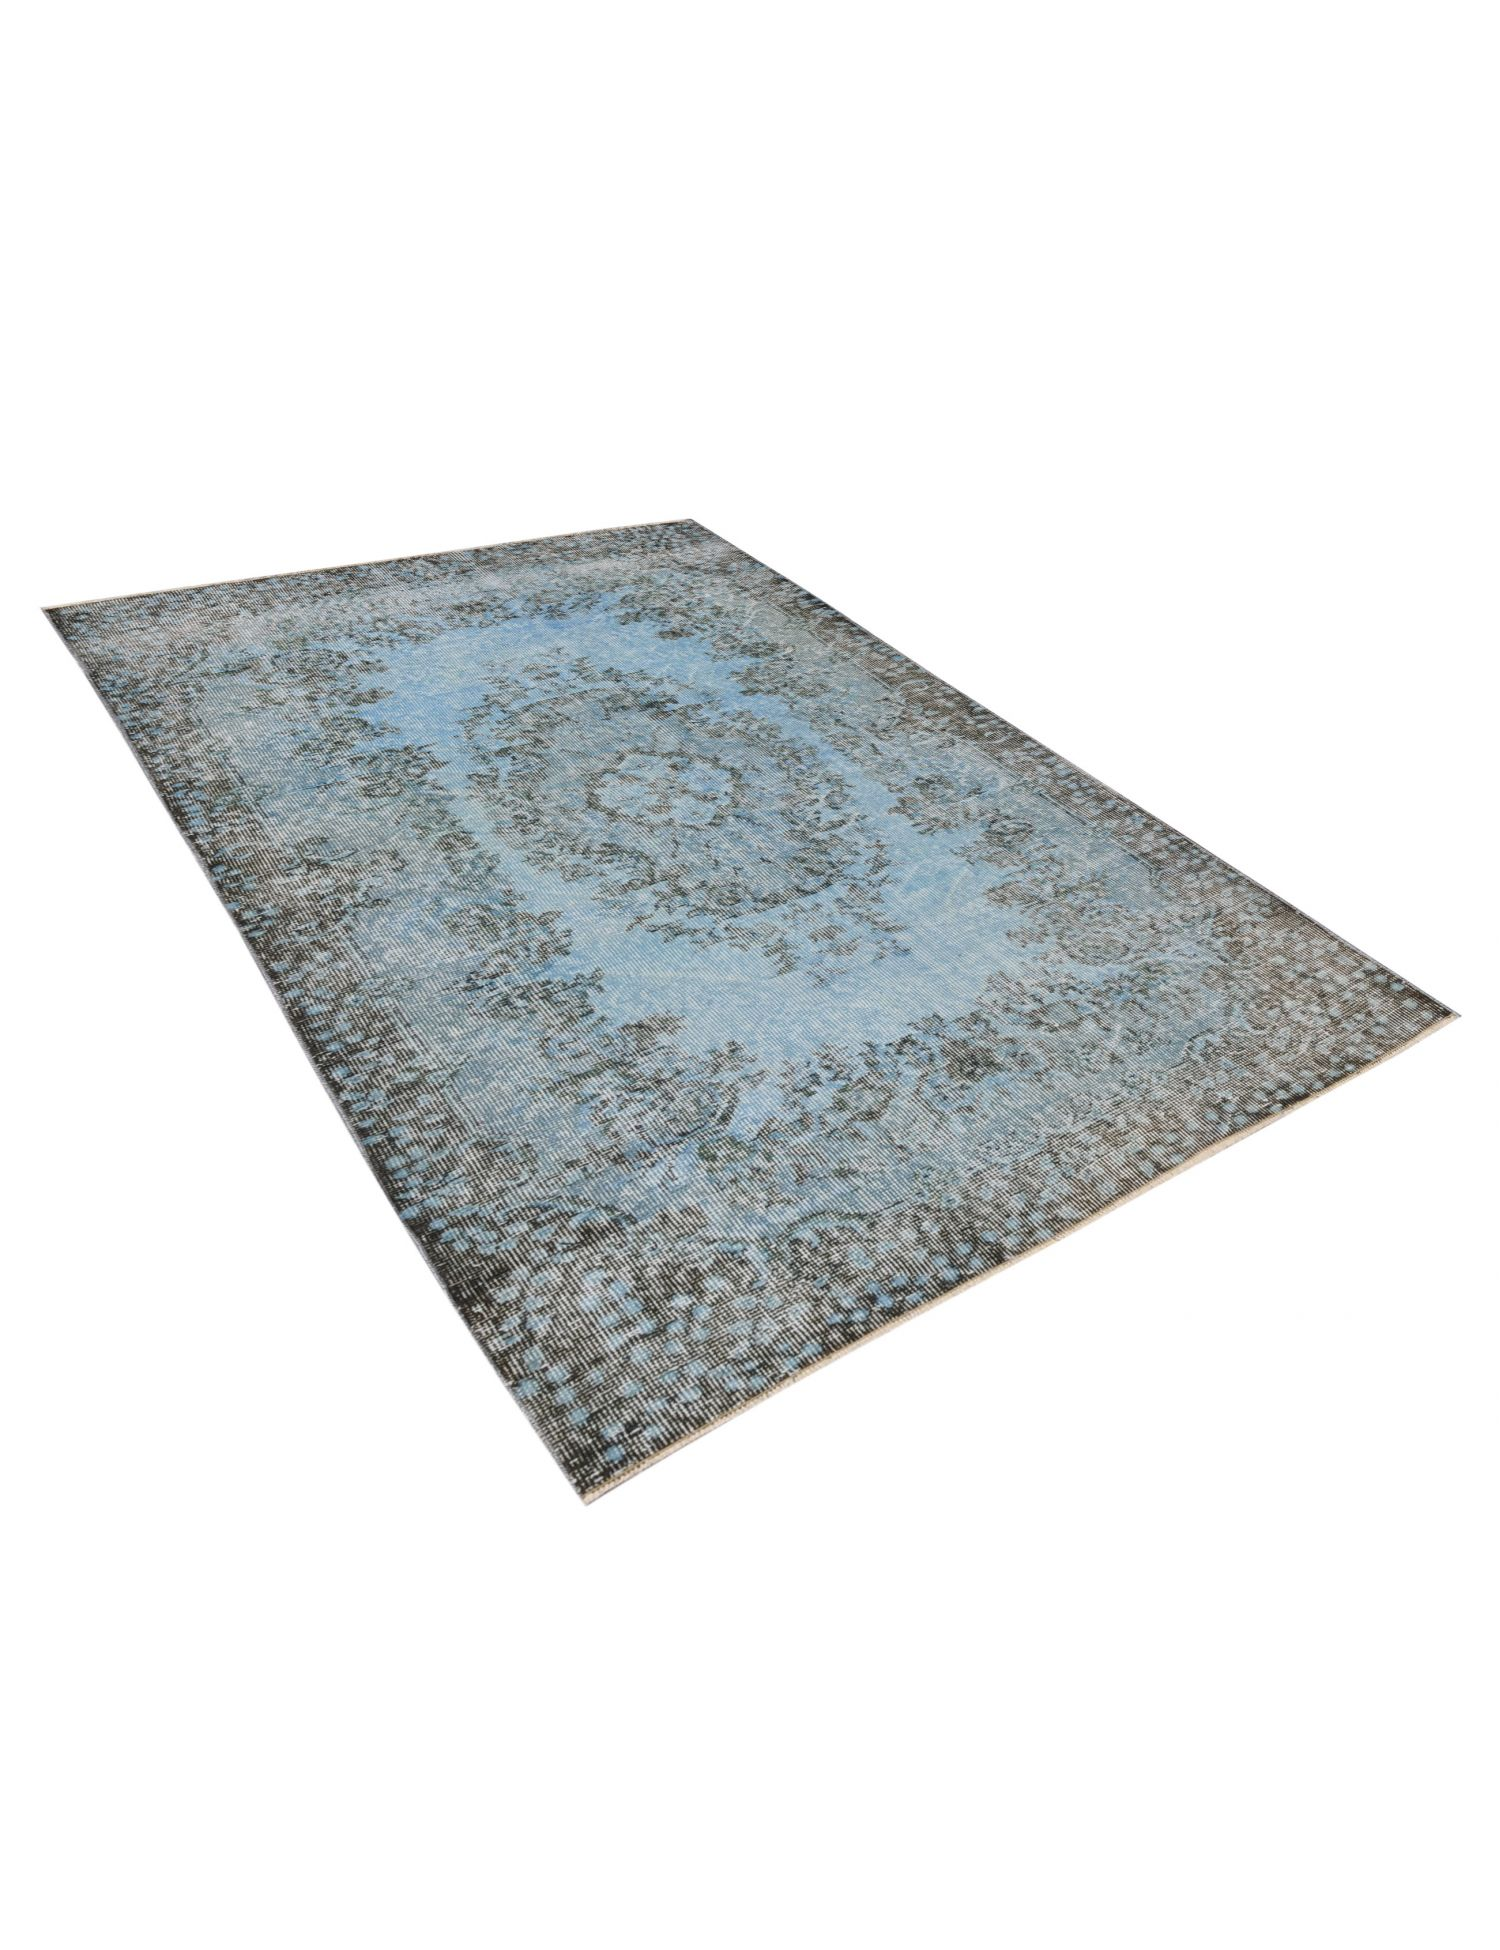 Vintage Carpet  blue <br/>202 x 120 cm